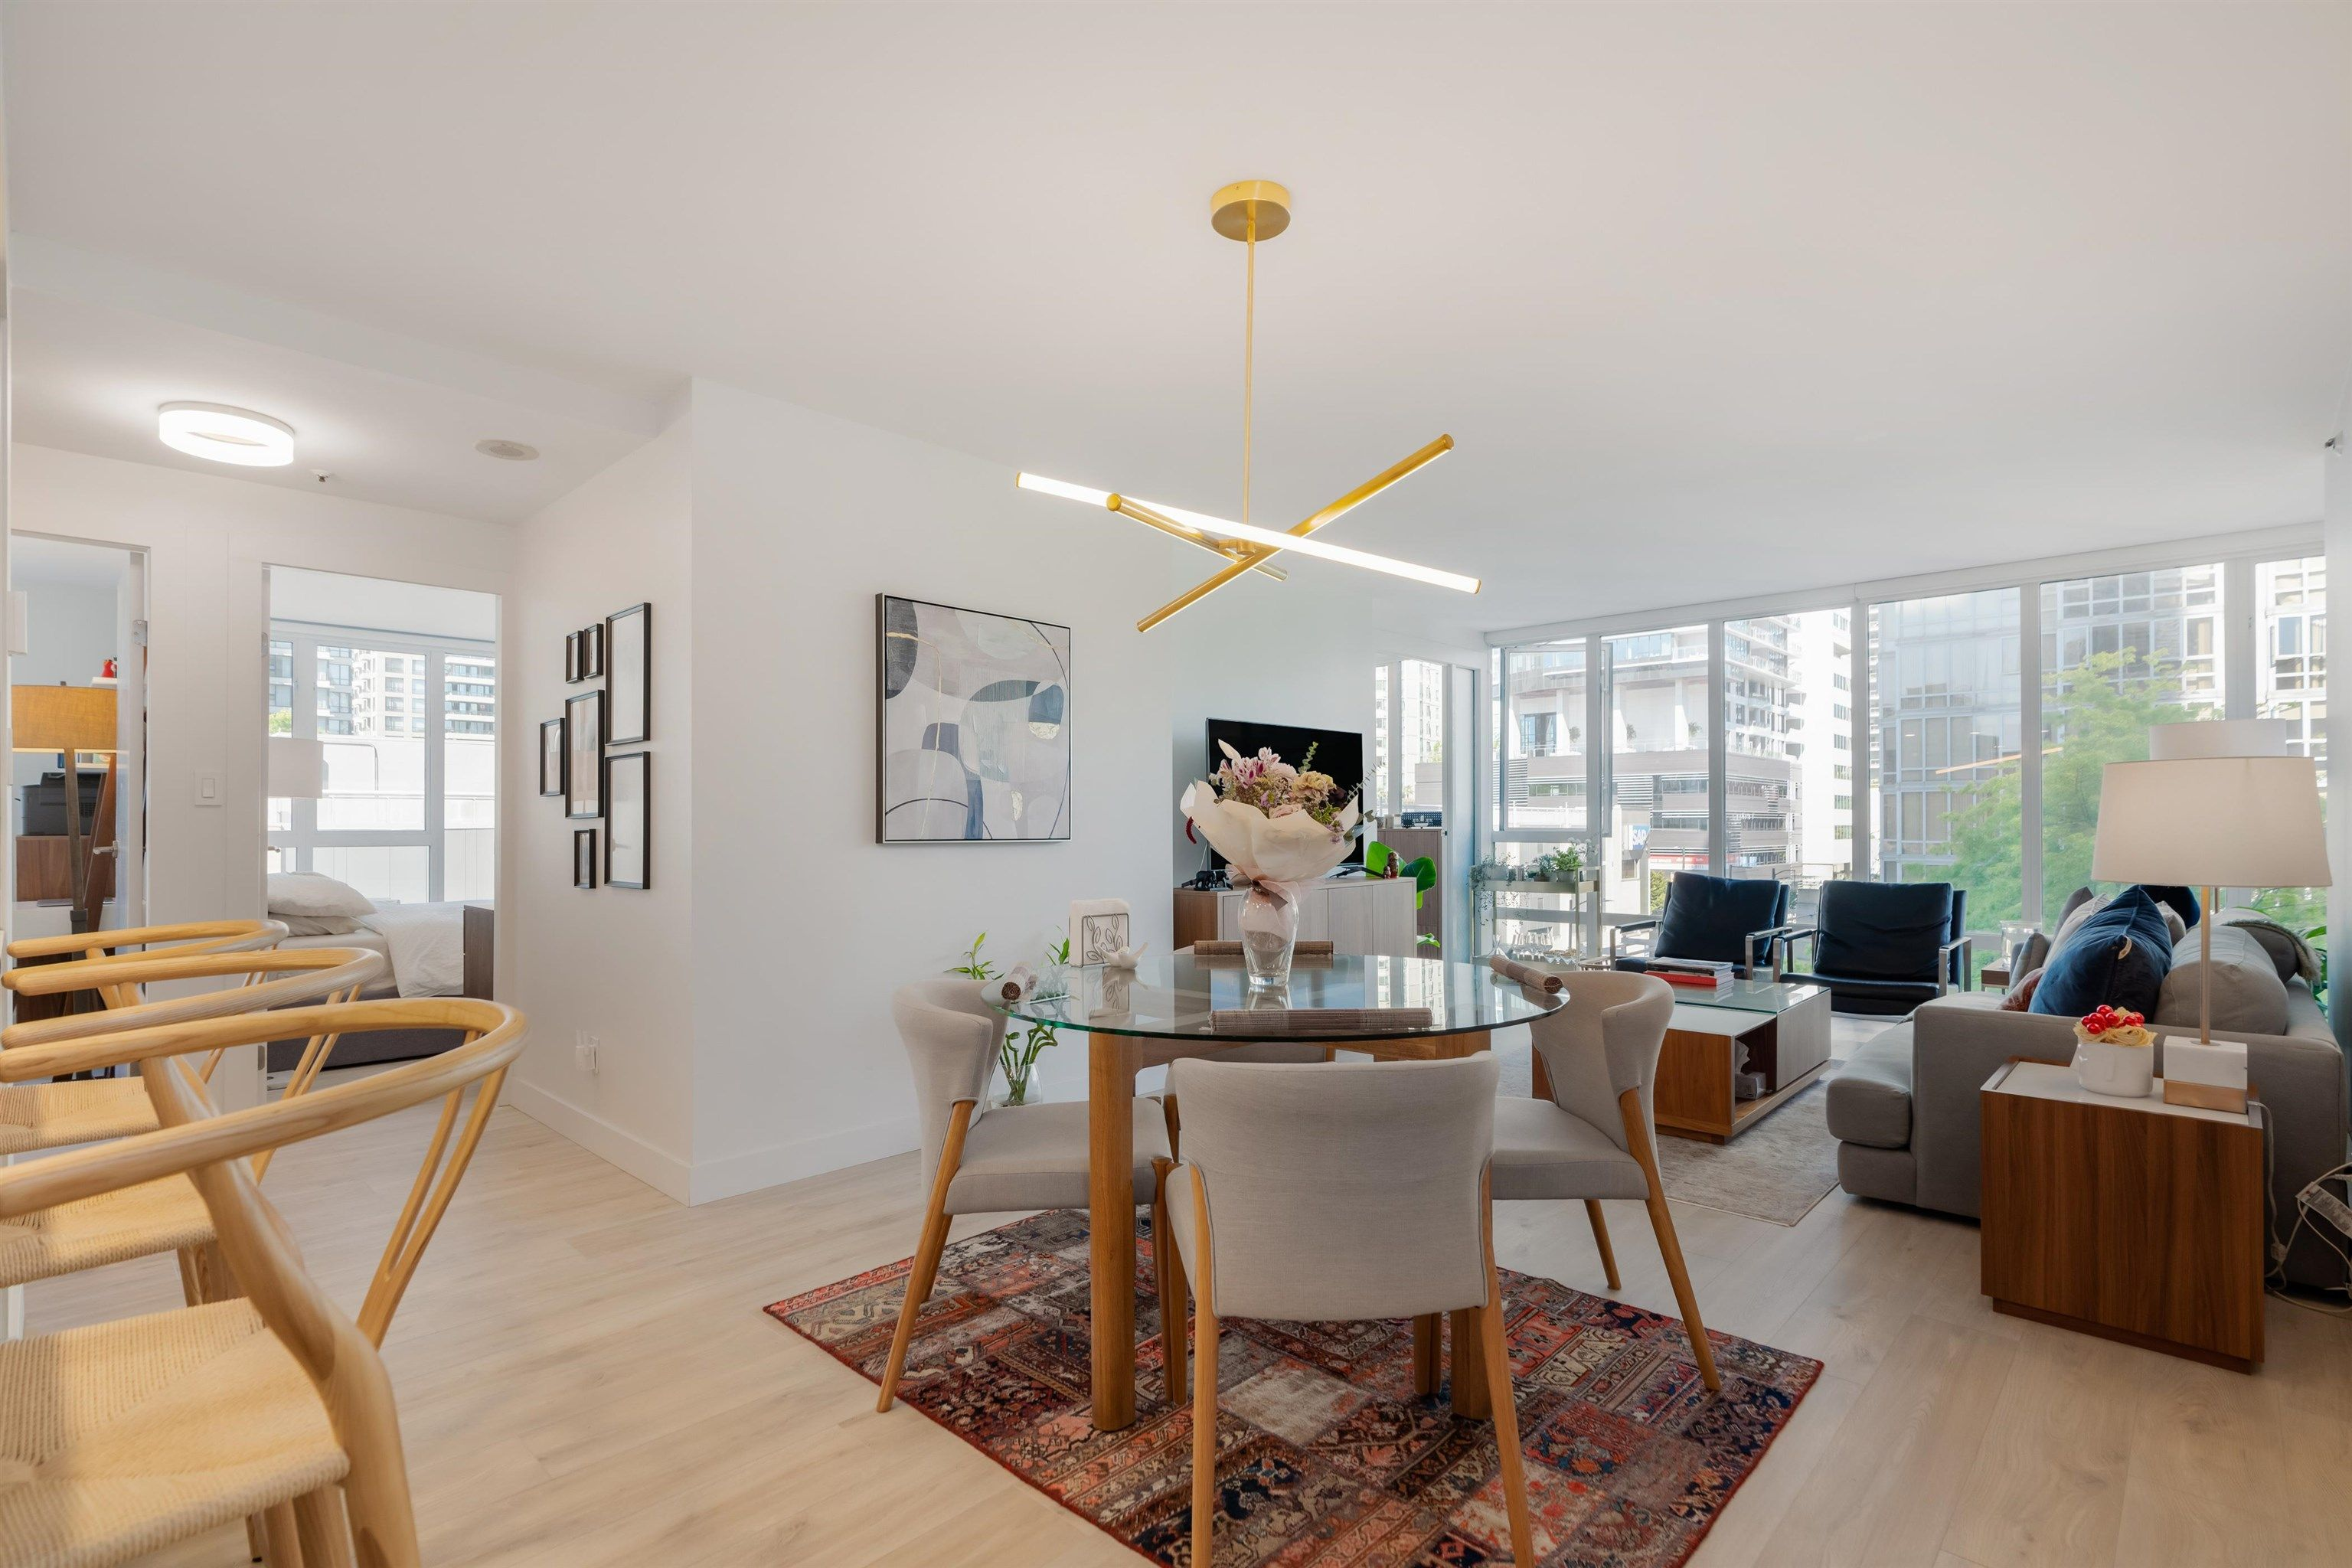 """Main Photo: 506 950 CAMBIE Street in Vancouver: Yaletown Condo for sale in """"Pacific Place Landmark I"""" (Vancouver West)  : MLS®# R2616028"""